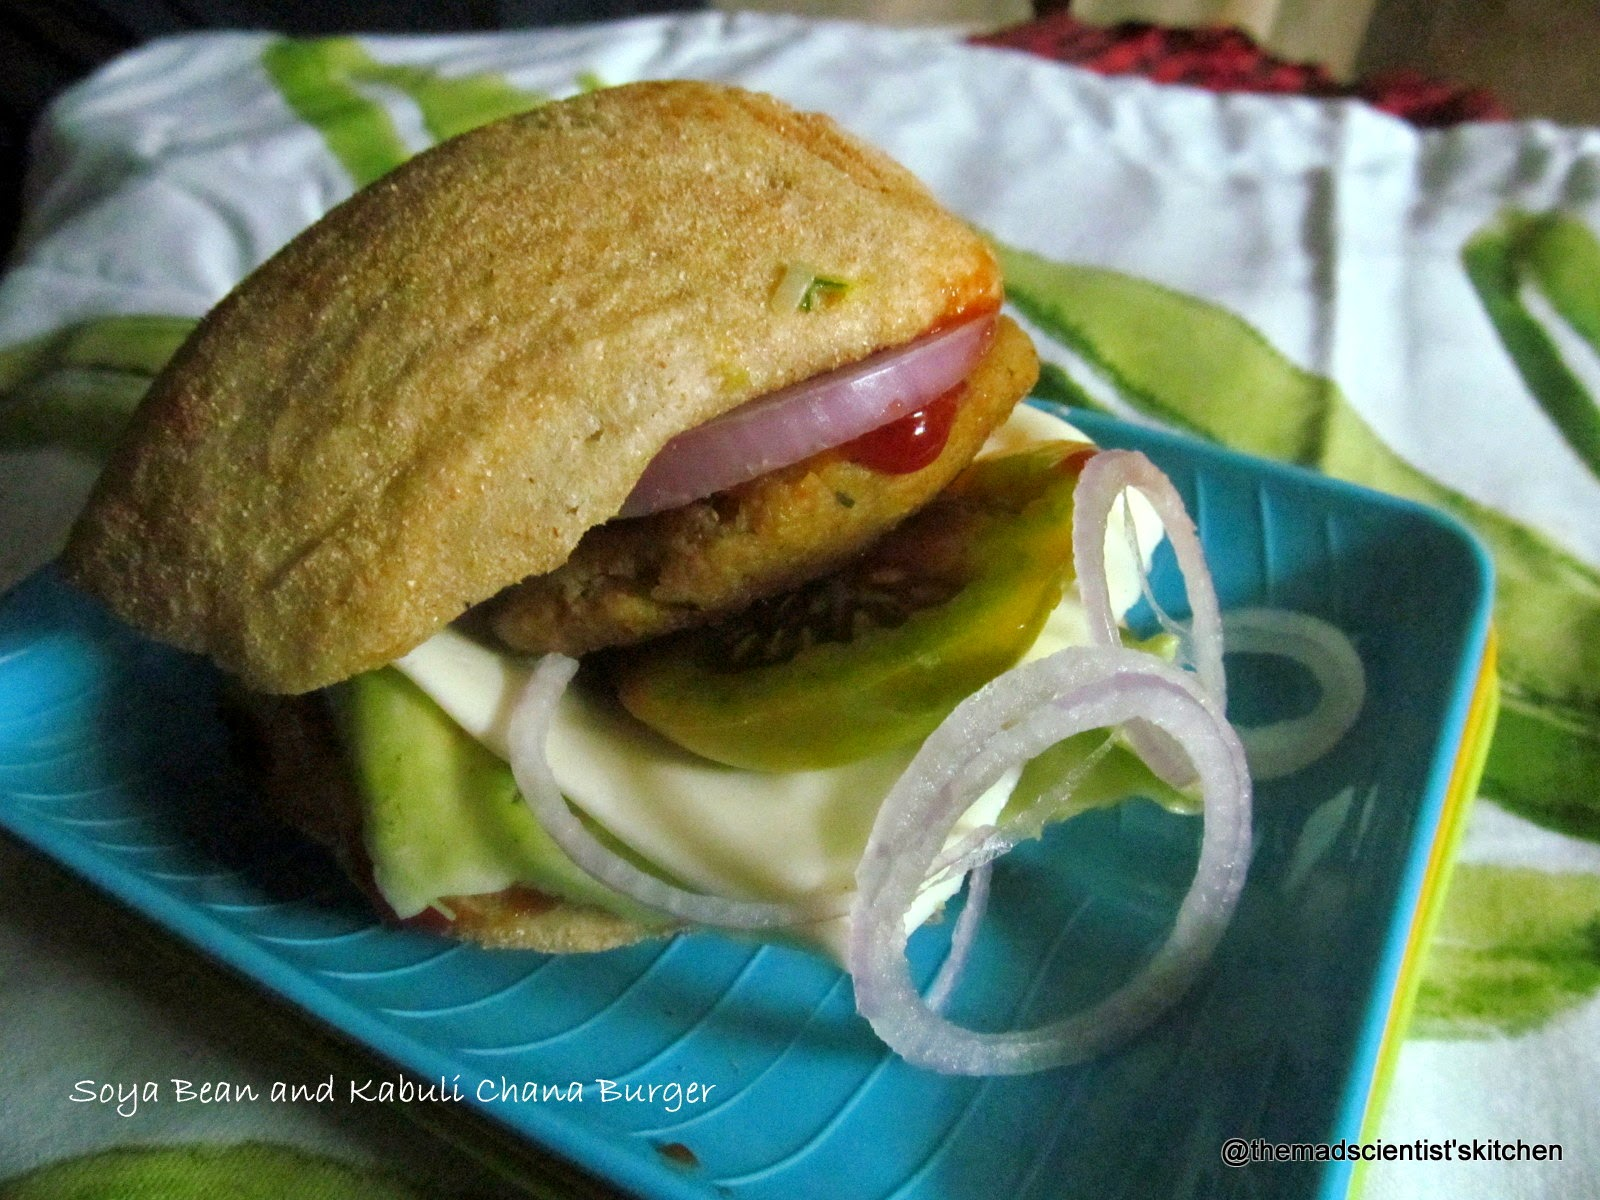 Soya Bean and Kabuli Chana Burgers